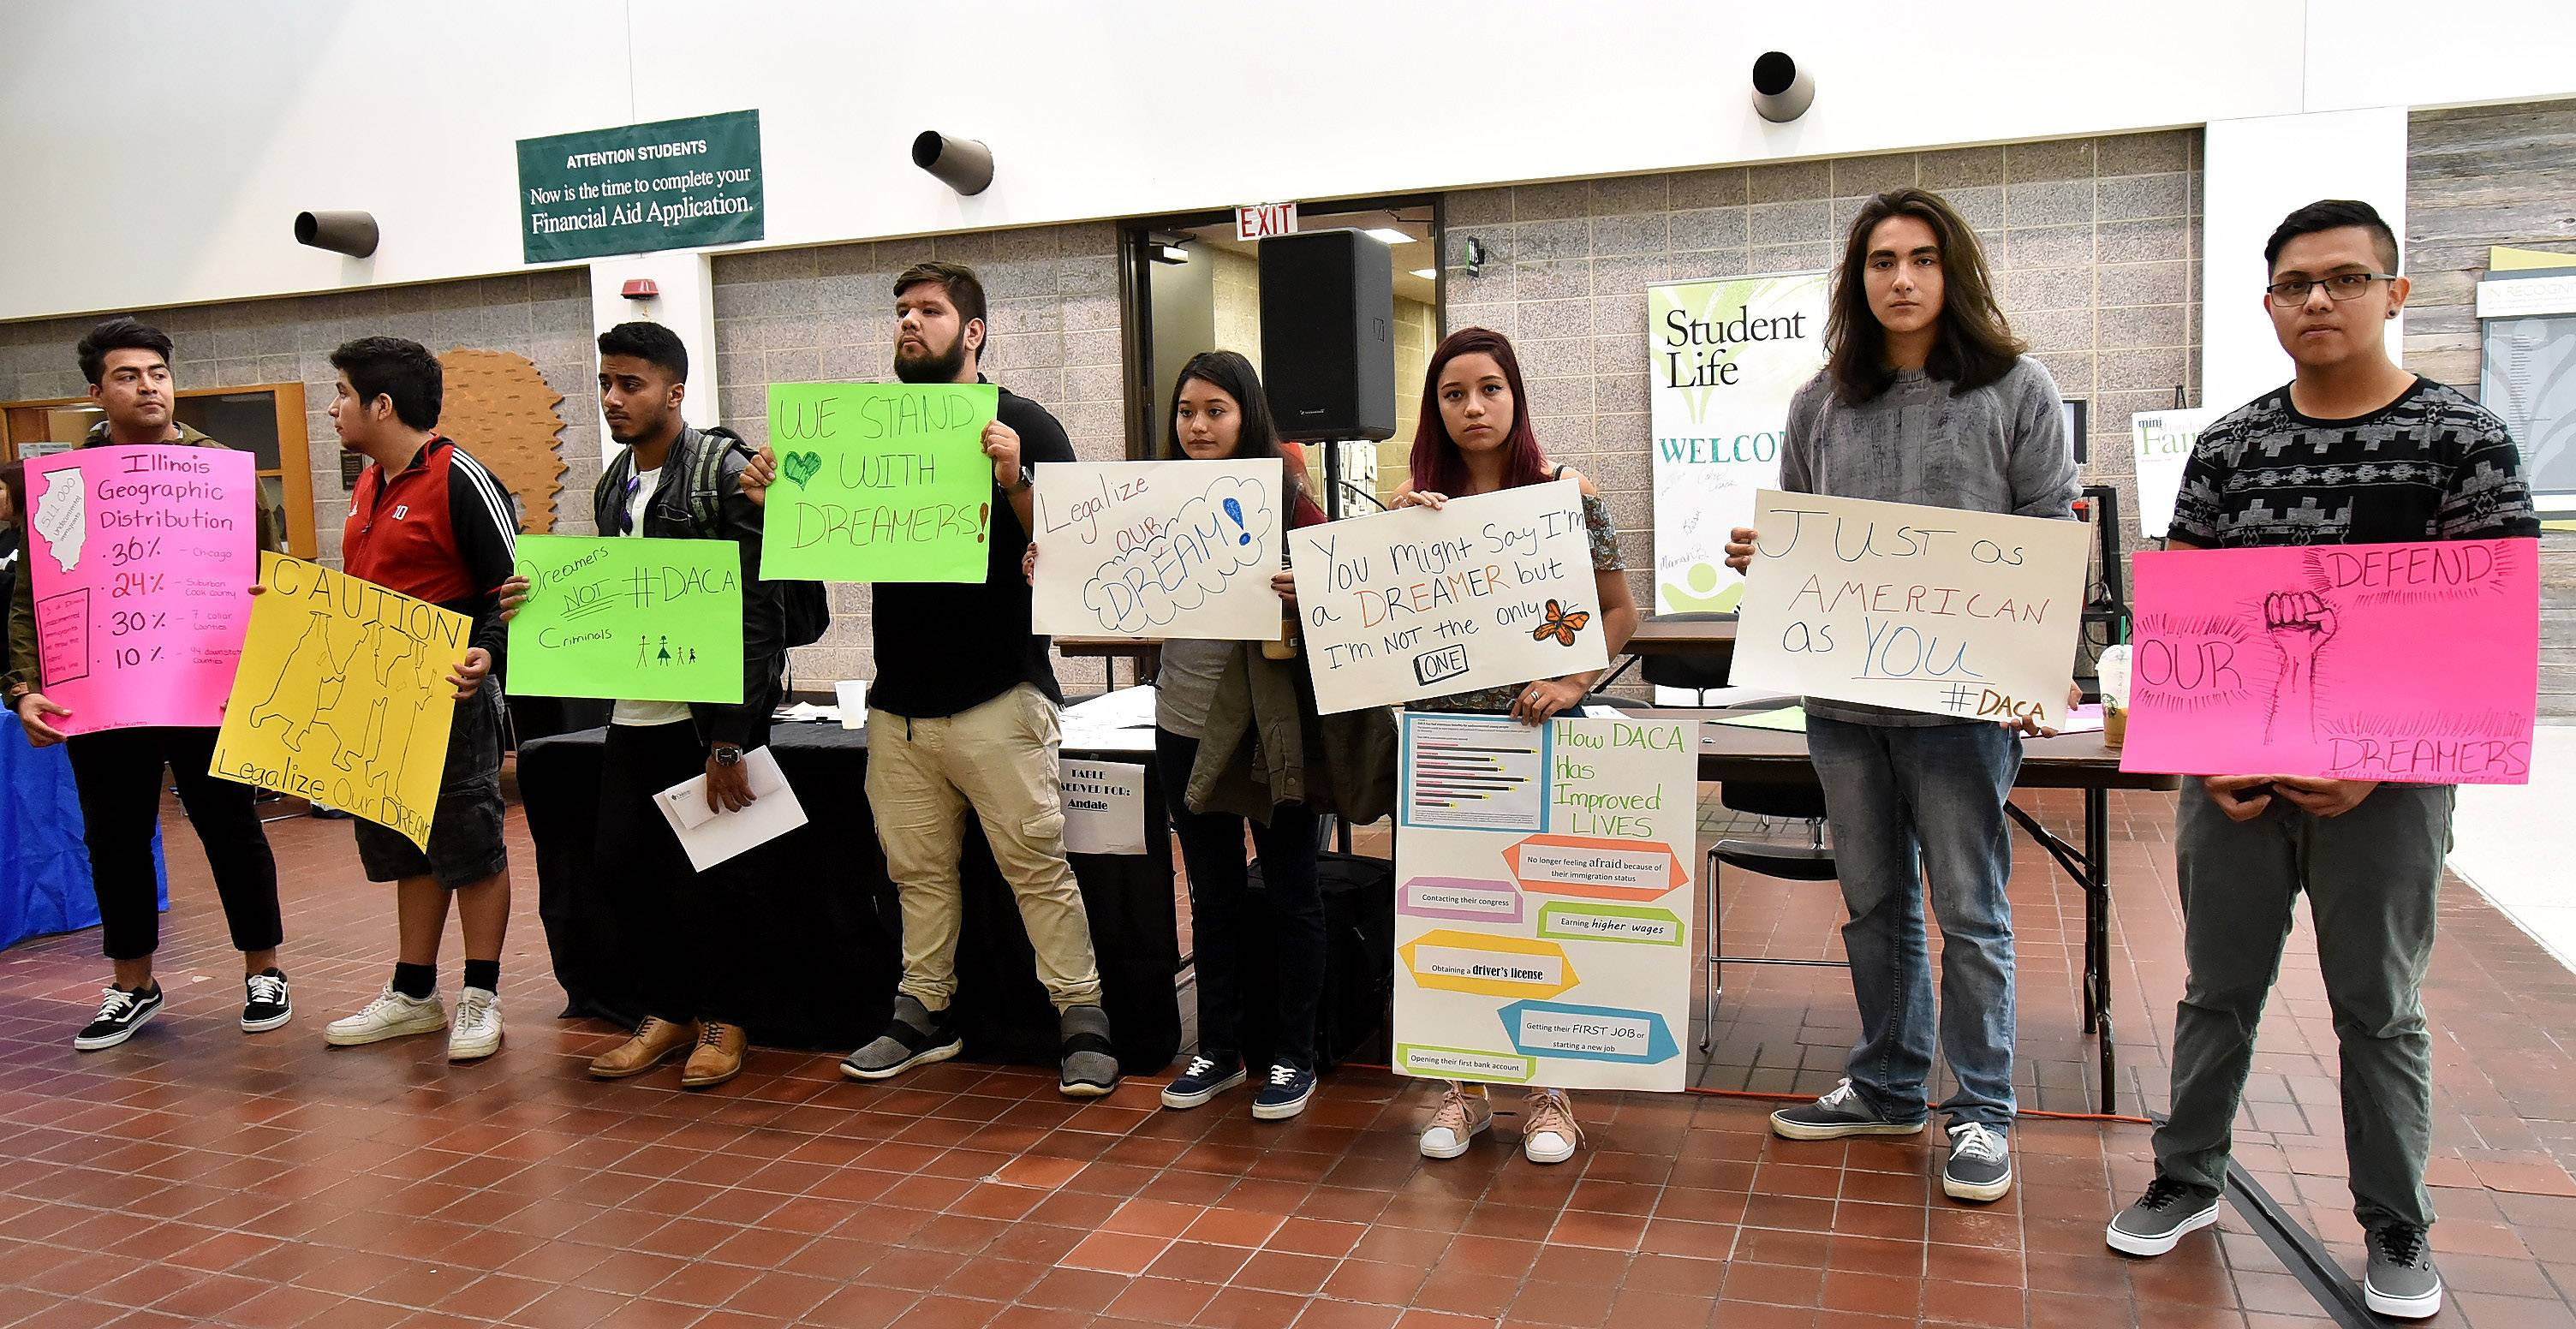 Oakton Community College students rally Wednesday in support of DACA students.